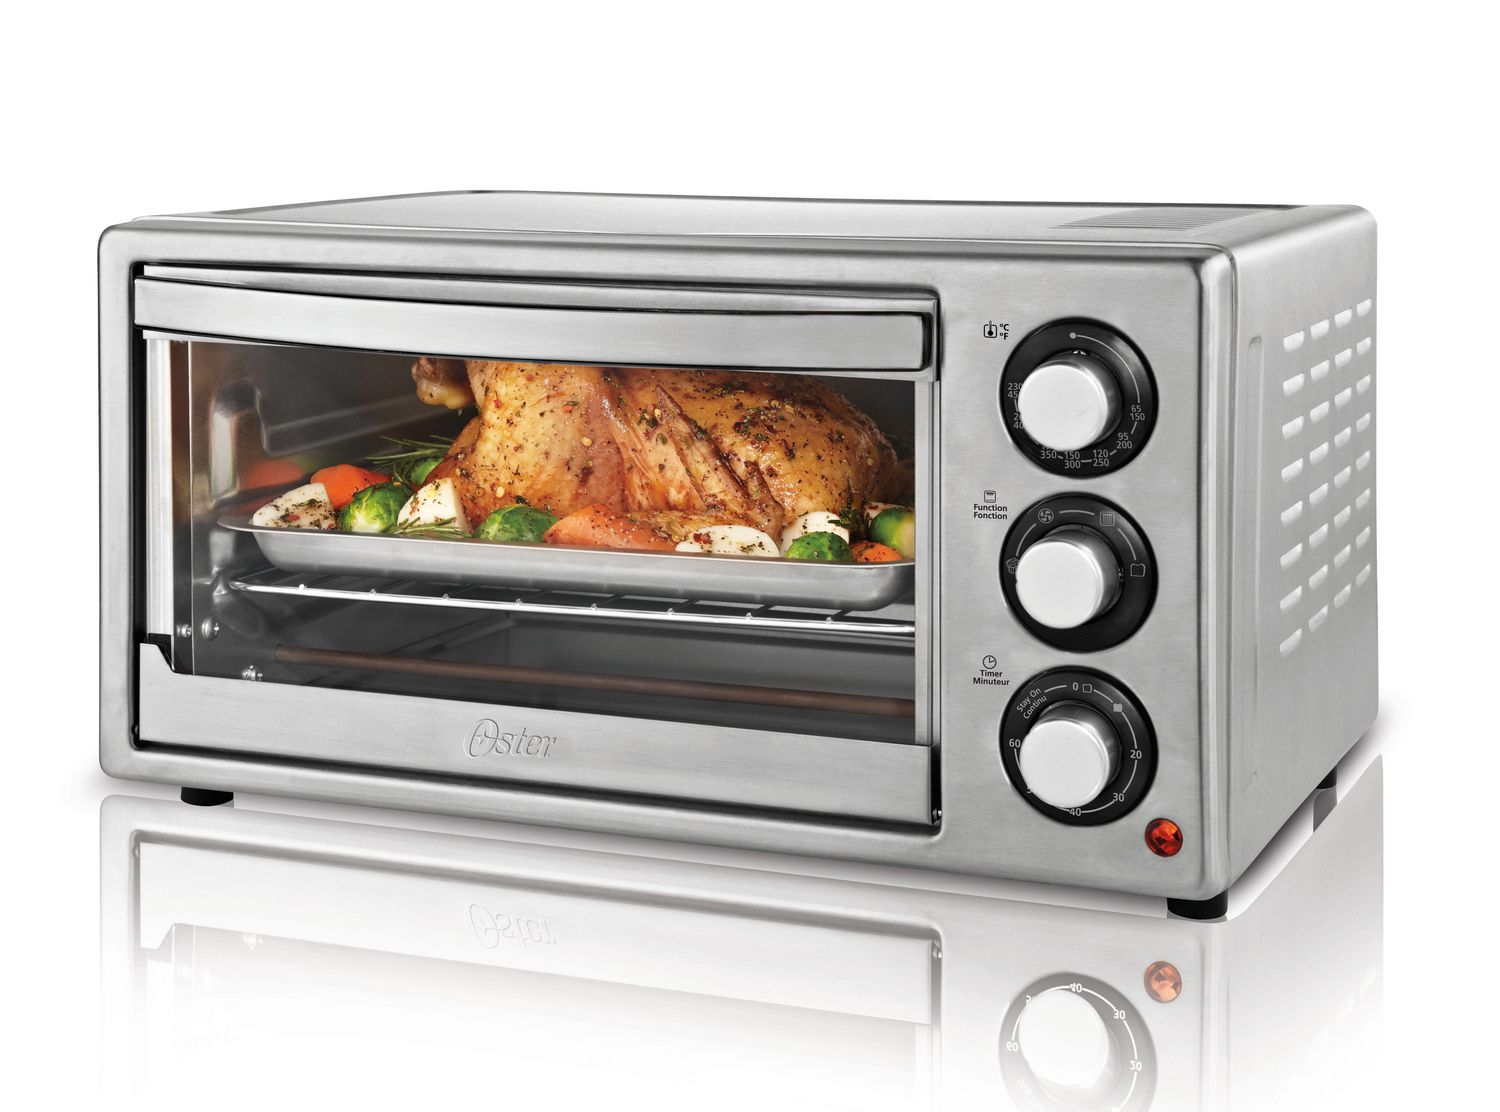 oster convection countertop toaster oven large capacity tssttvcg01 manual